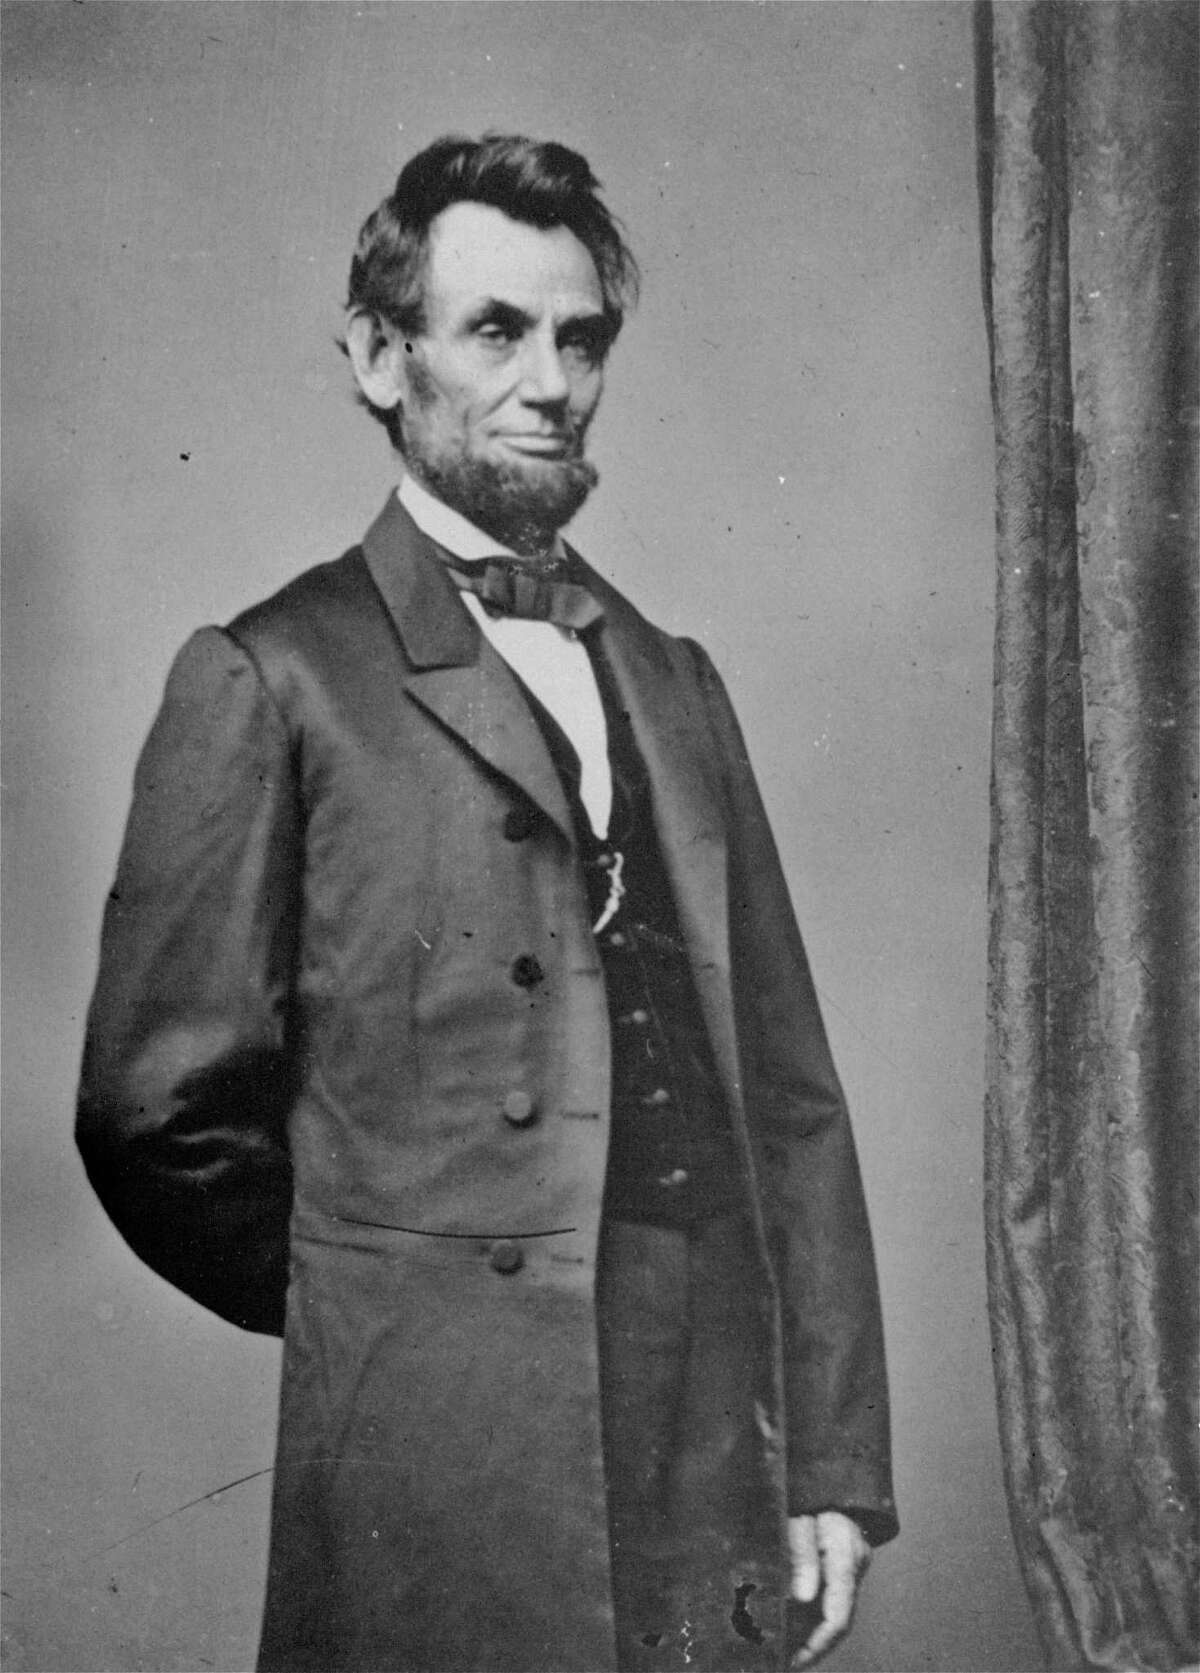 Lincoln Assassinated April 14, 1865 - President Abraham Lincoln is fatally shot while attending a play at Ford's Theatre in Washington, D.C.. He dies one day later.